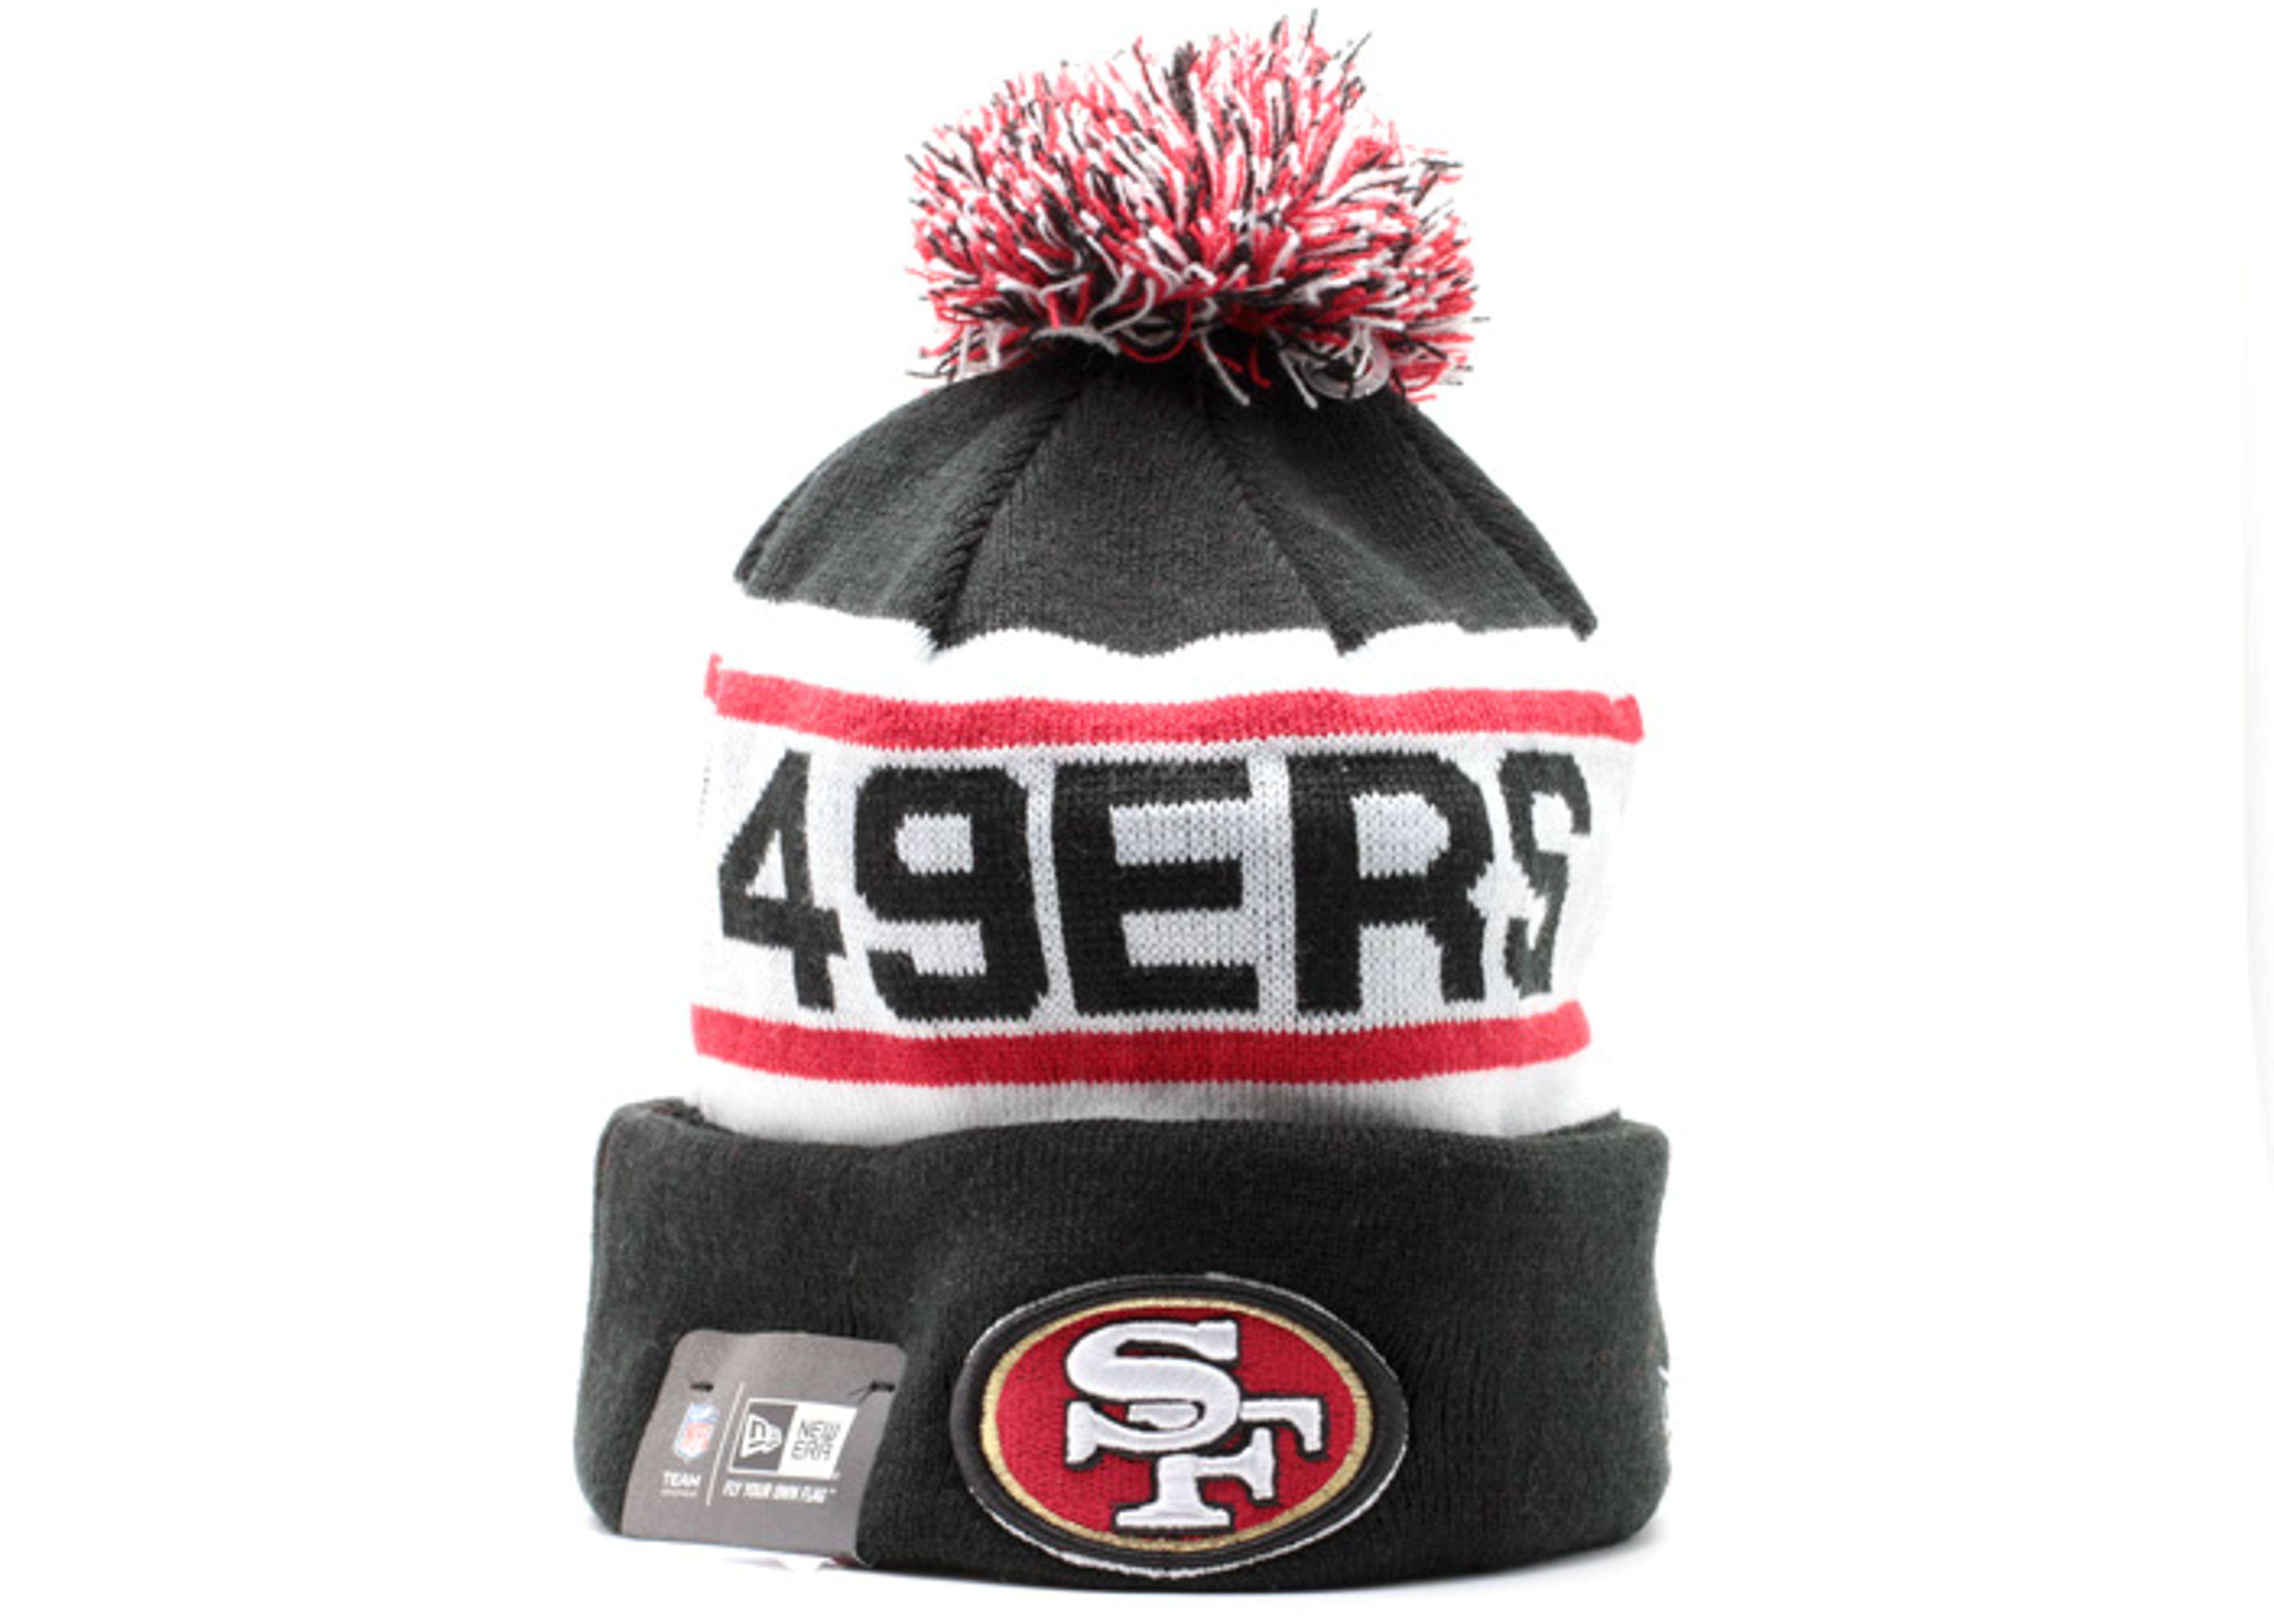 san francisco 49ers cuffed pom knit beanie